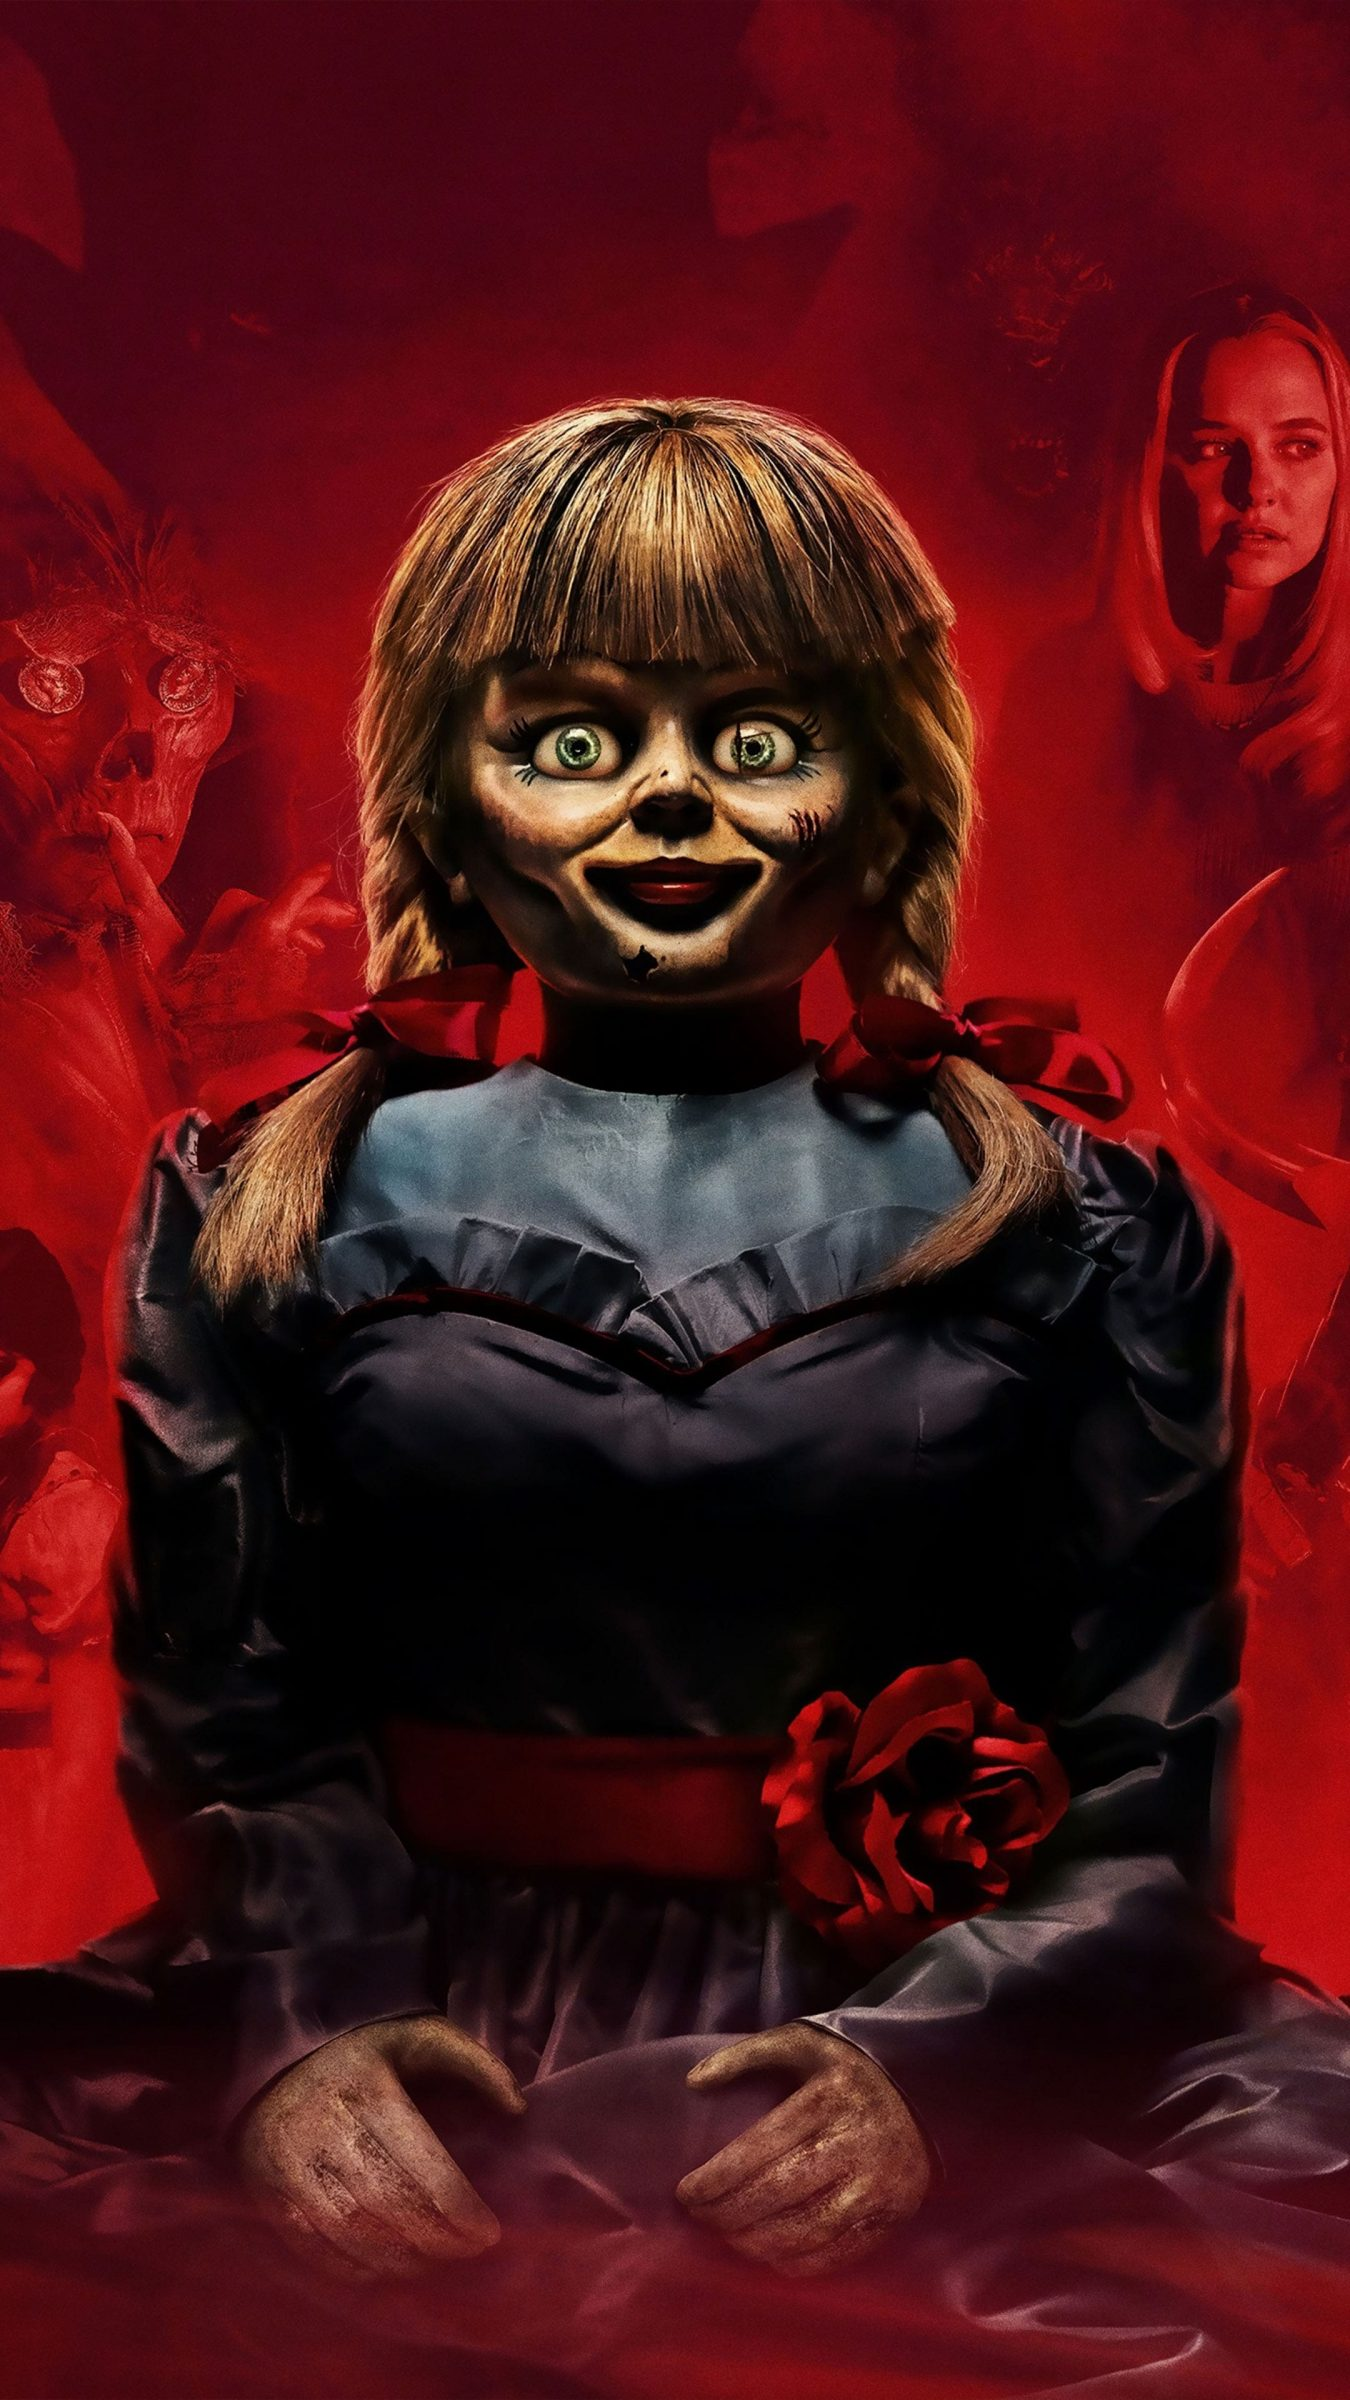 Annabelle Comes Home Hd Wallpapers 7wallpapers Net Annabelle Doll Horror Wallpapers Hd Scary Wallpaper